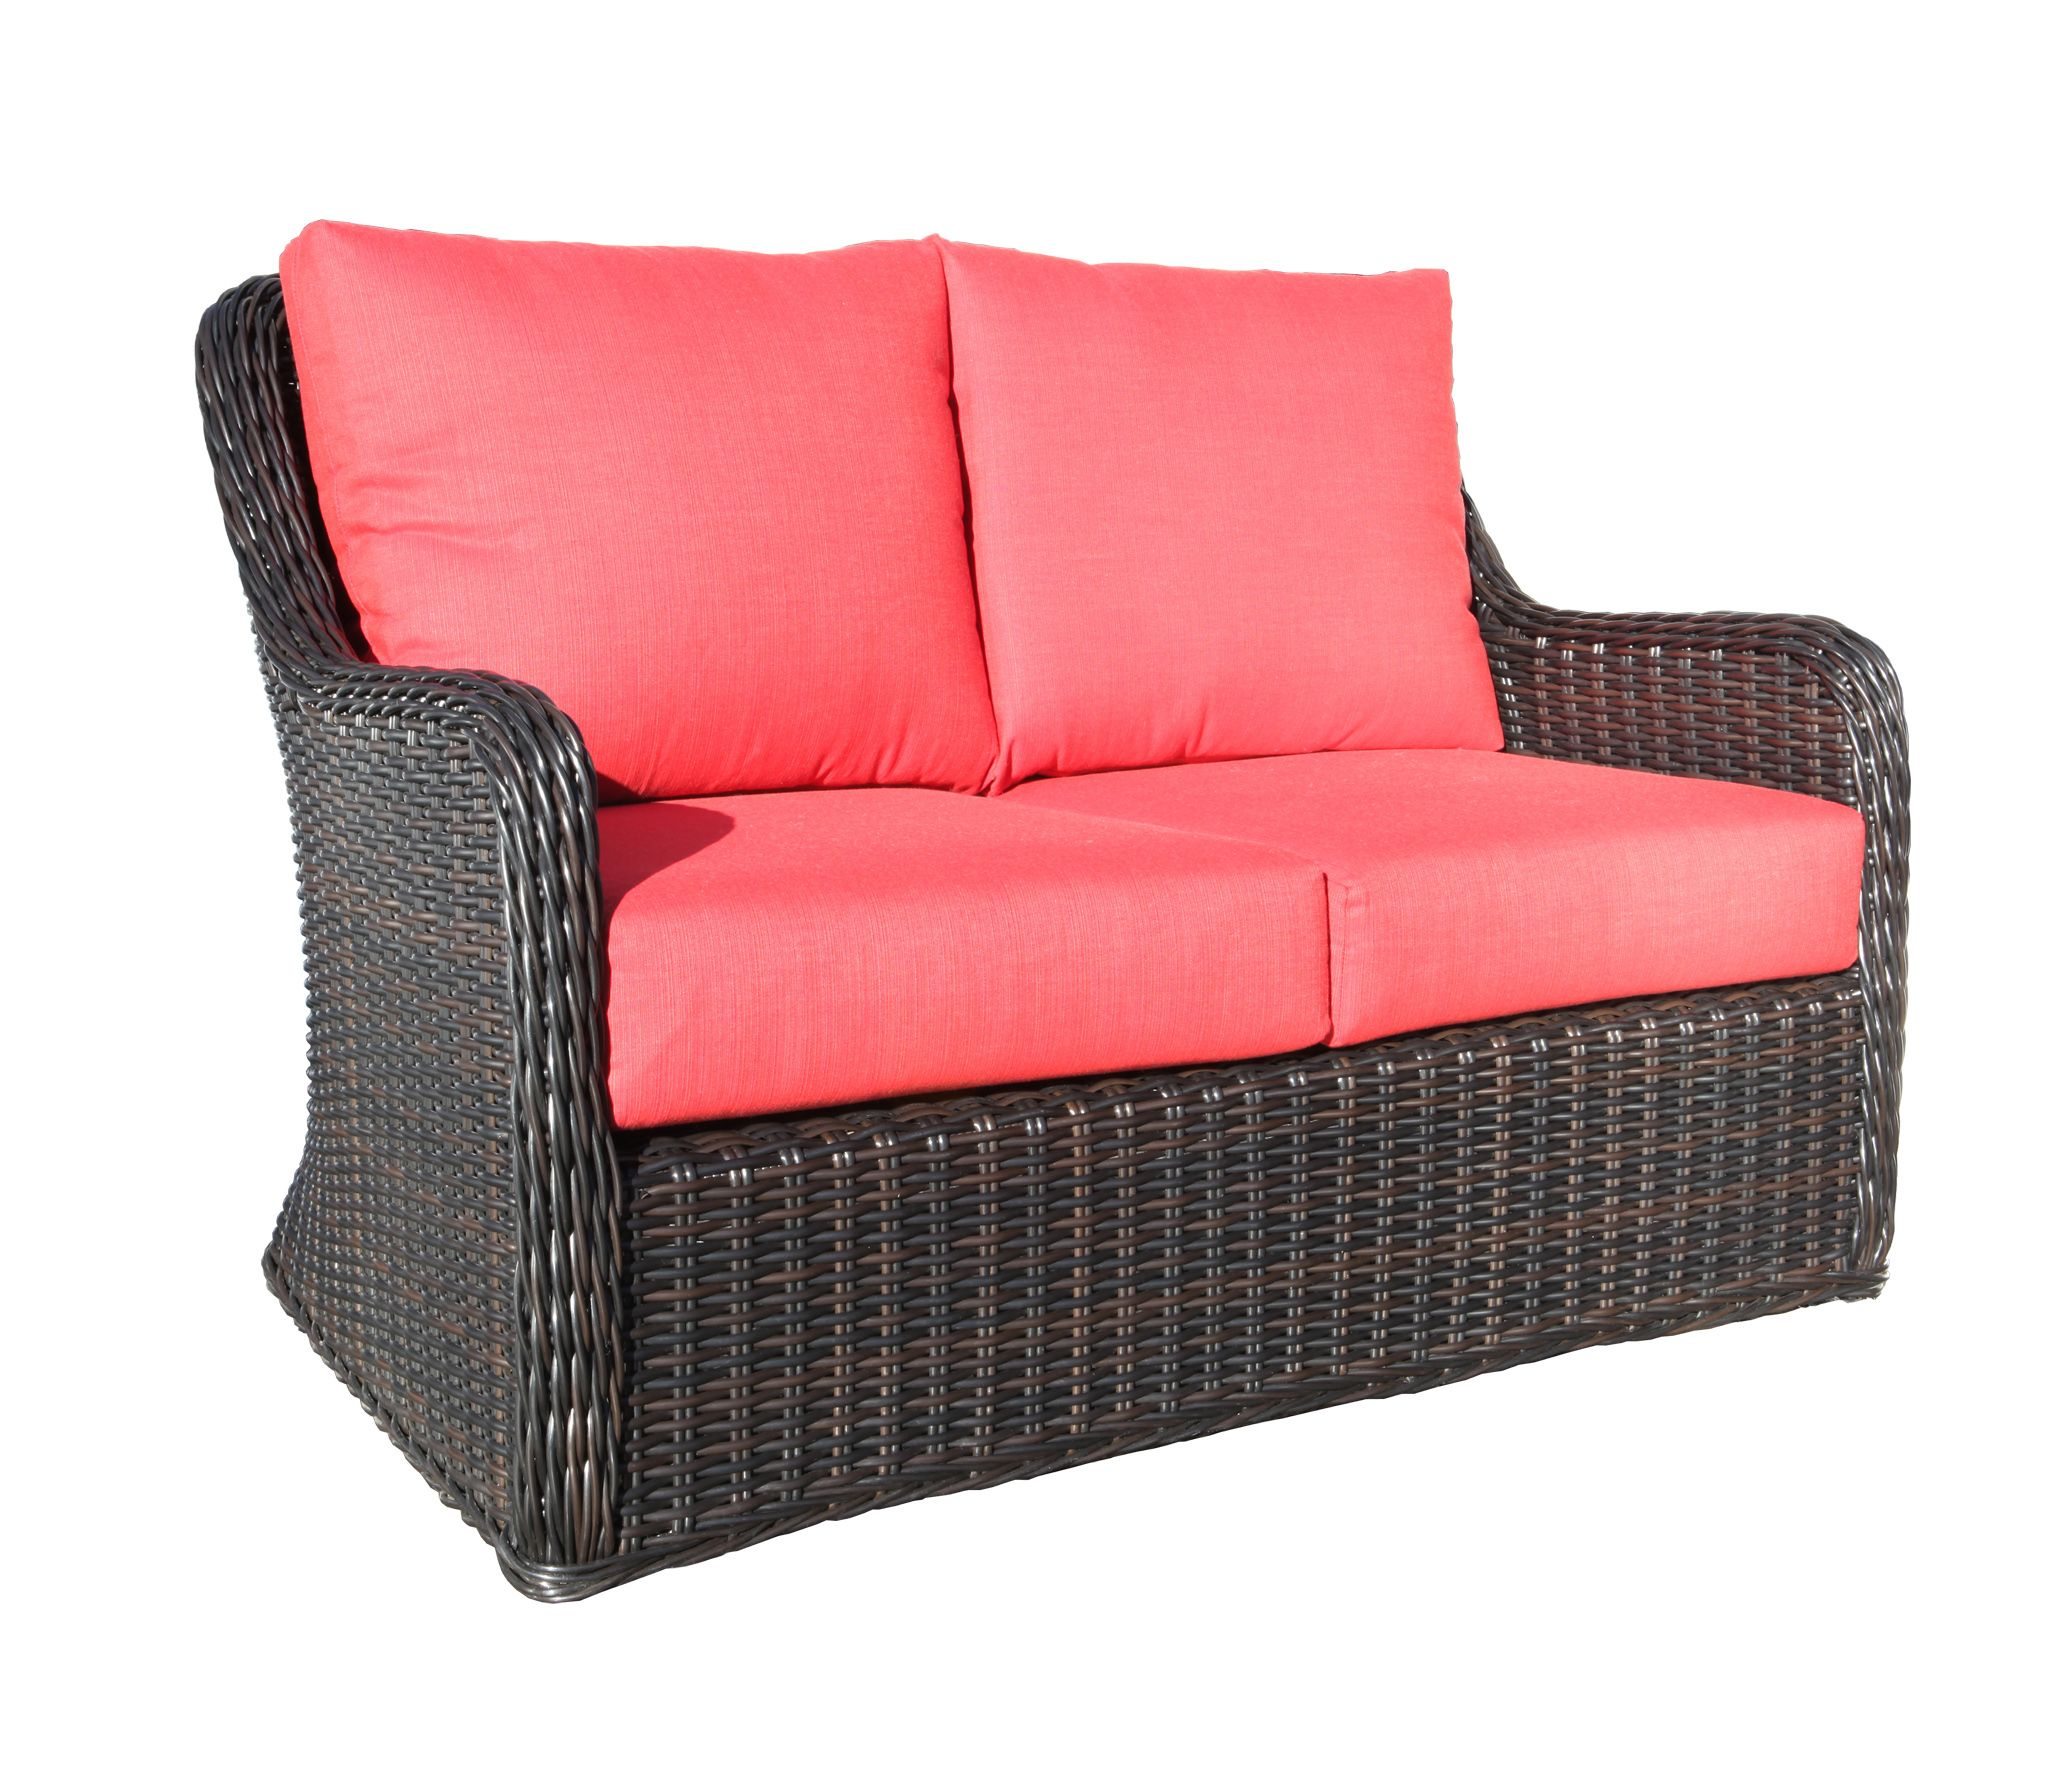 Outdoor Wicker Patio Furniture - Dune Loveseat | Furniture ... on Dune Outdoor Living id=27594